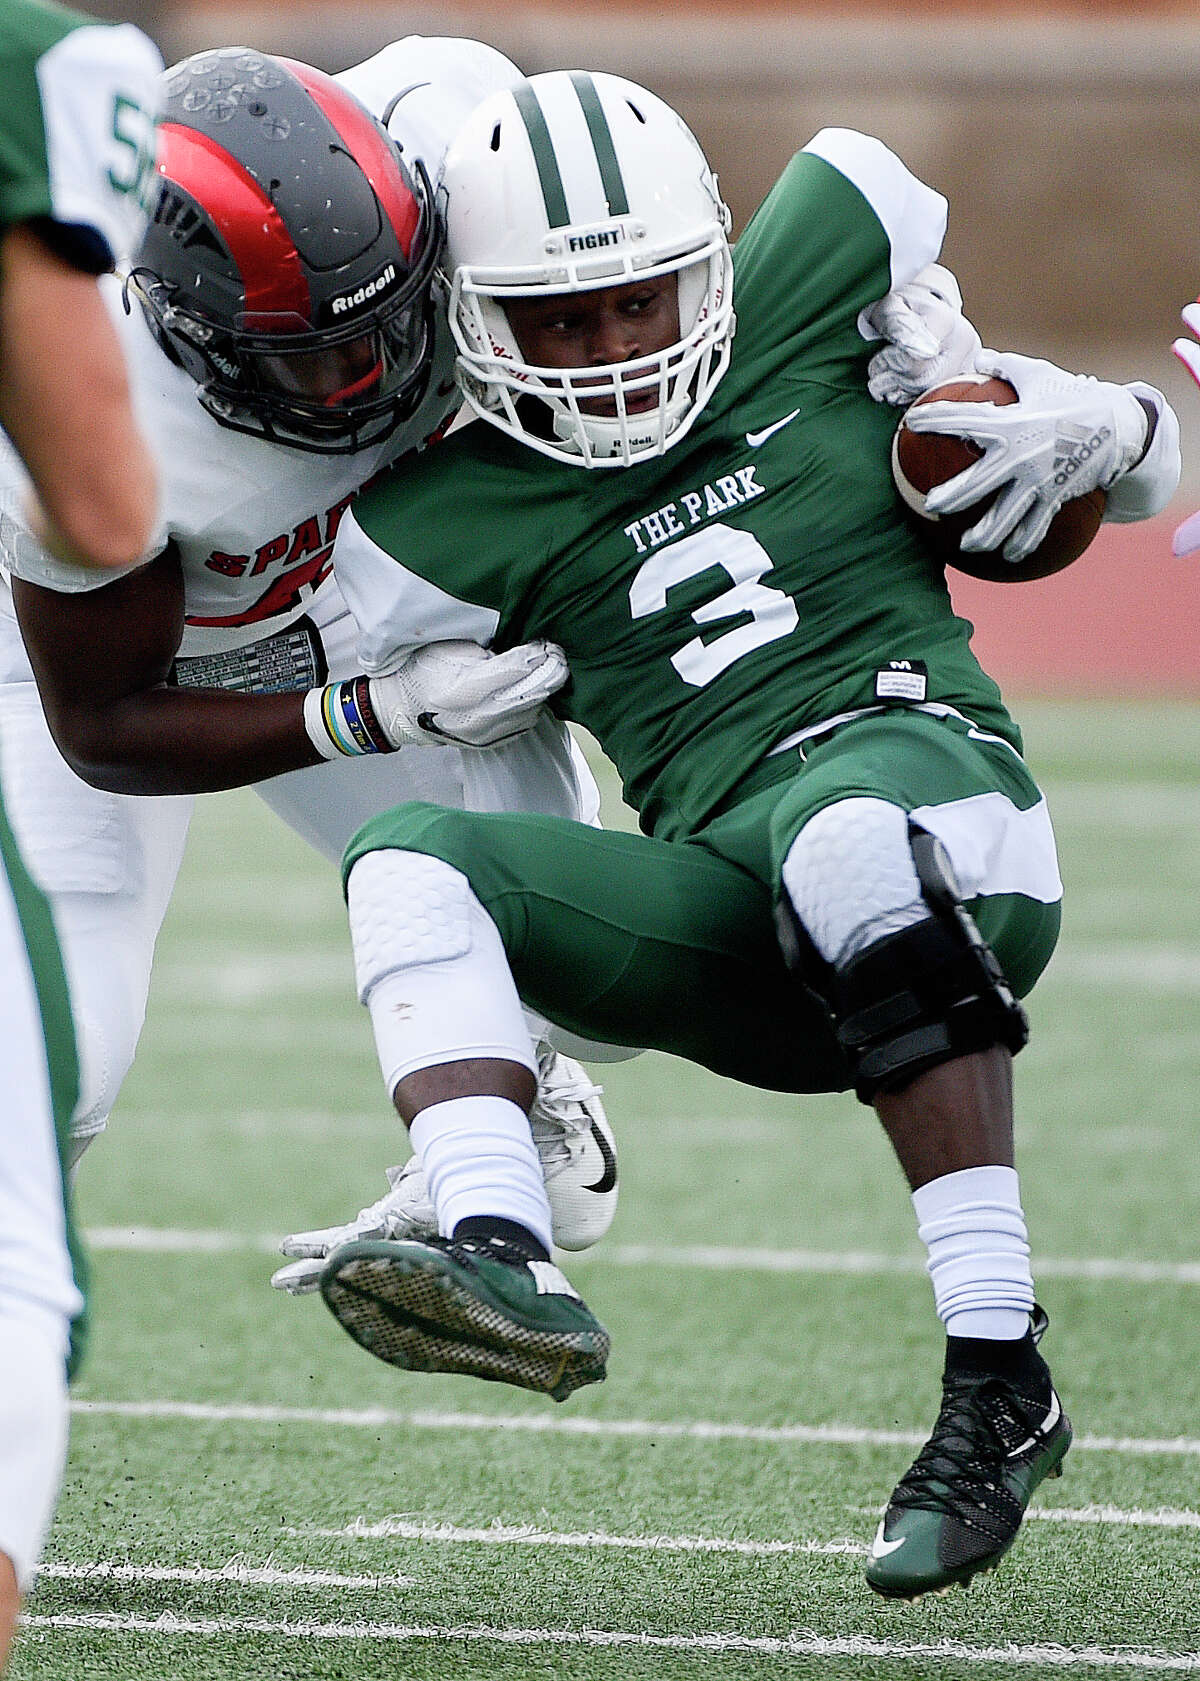 Kingwood Park wide receiver Dylan Johnson, right, is tackled by Porter linebacker Zhyon Bell during the first half of a high school football game, Saturday, Sept. 29, 2018, in Humble, TX. (Eric Christian Smith/Contributor)